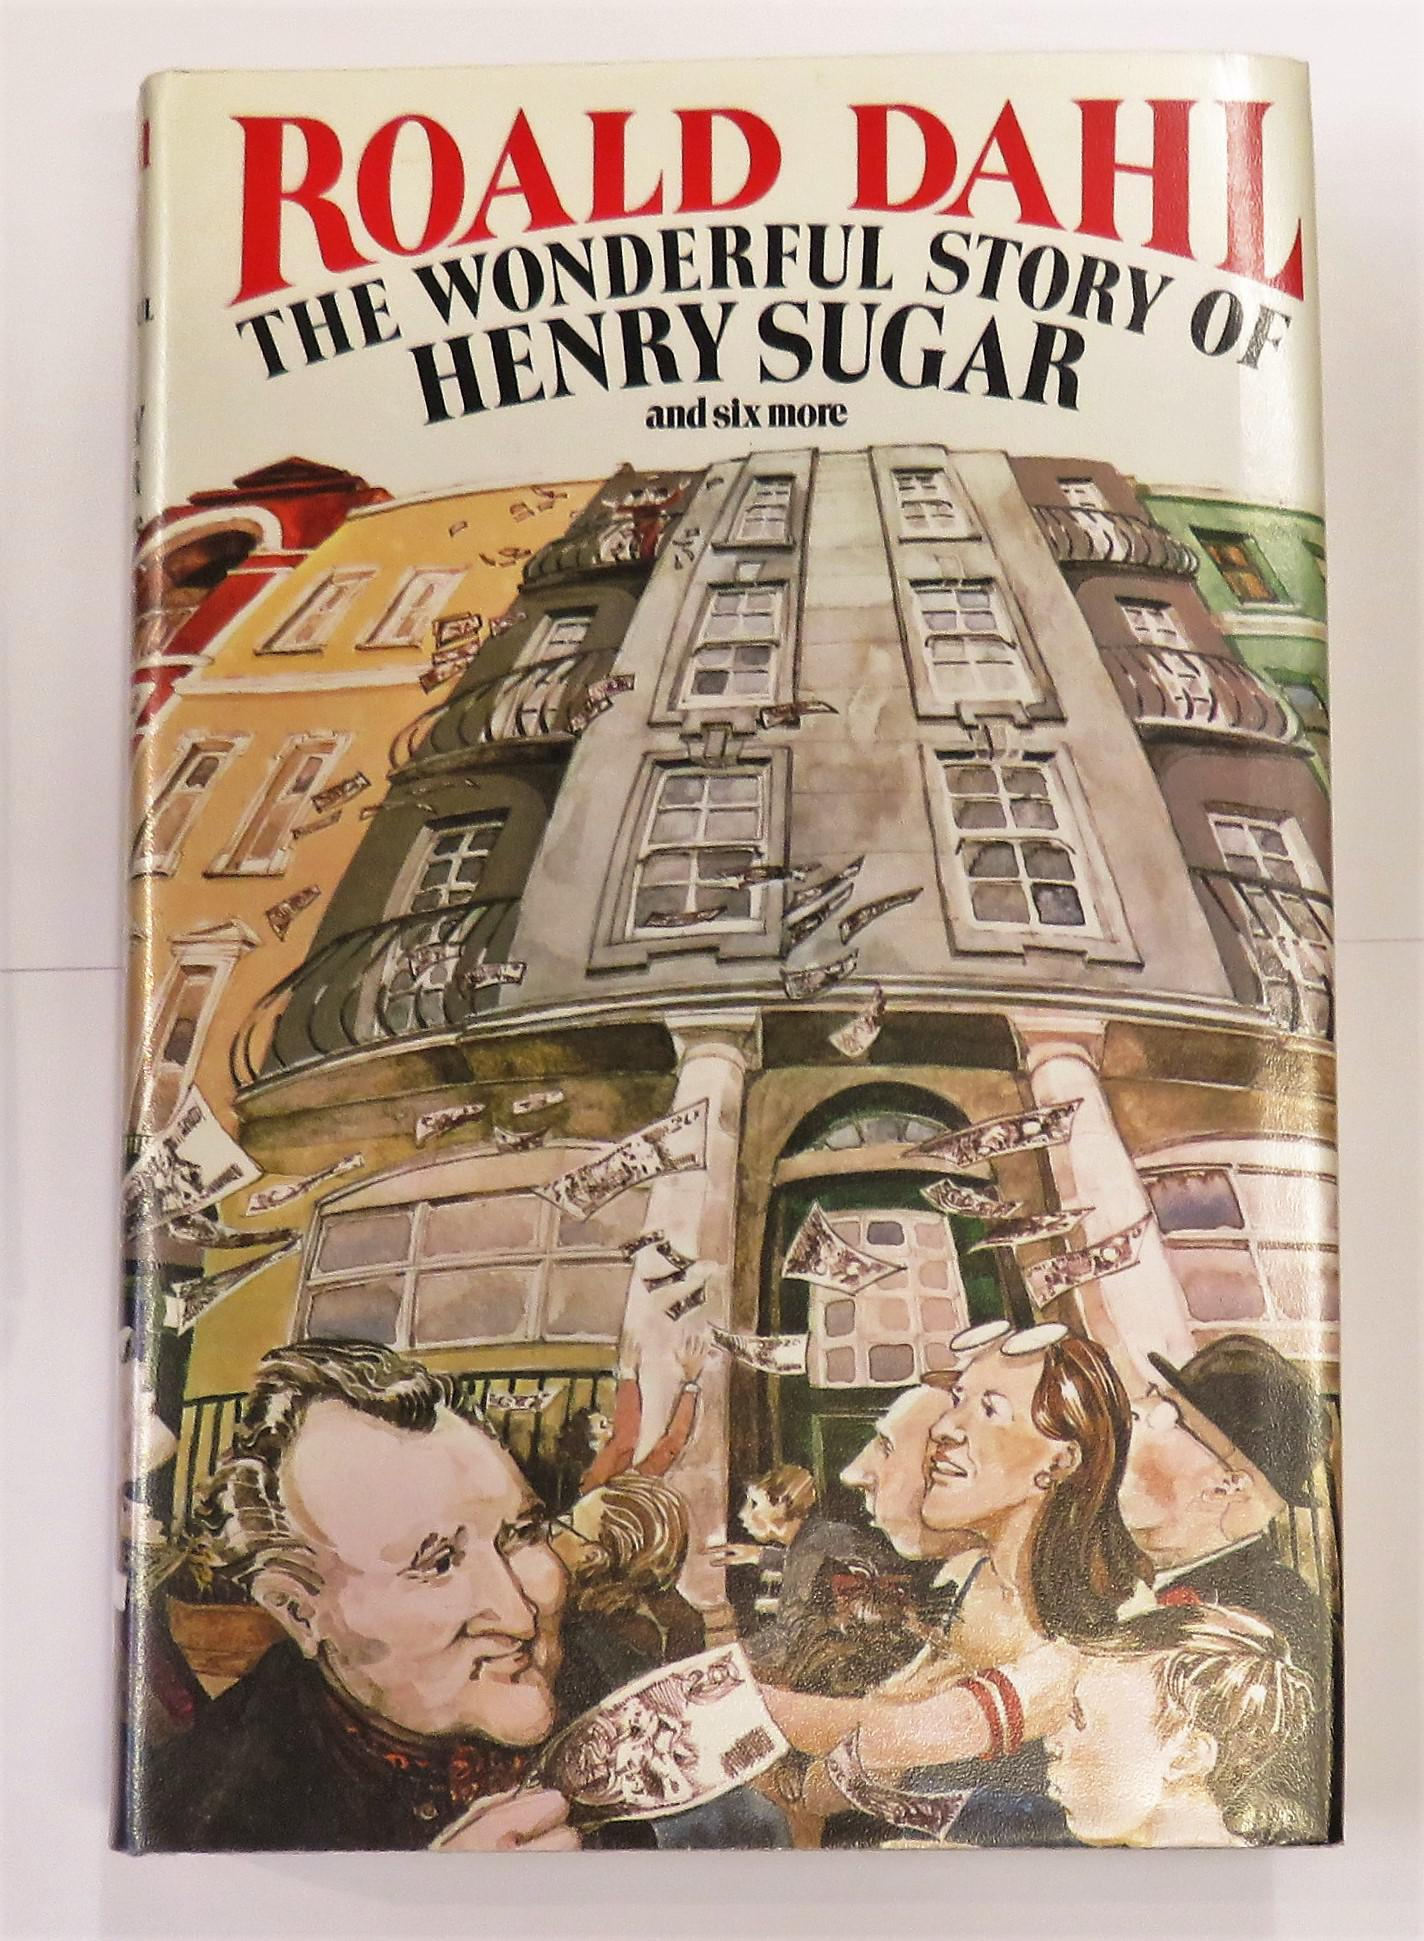 The Wonderful Story Of Henry Sugar and six more Signed by Roald Dahl